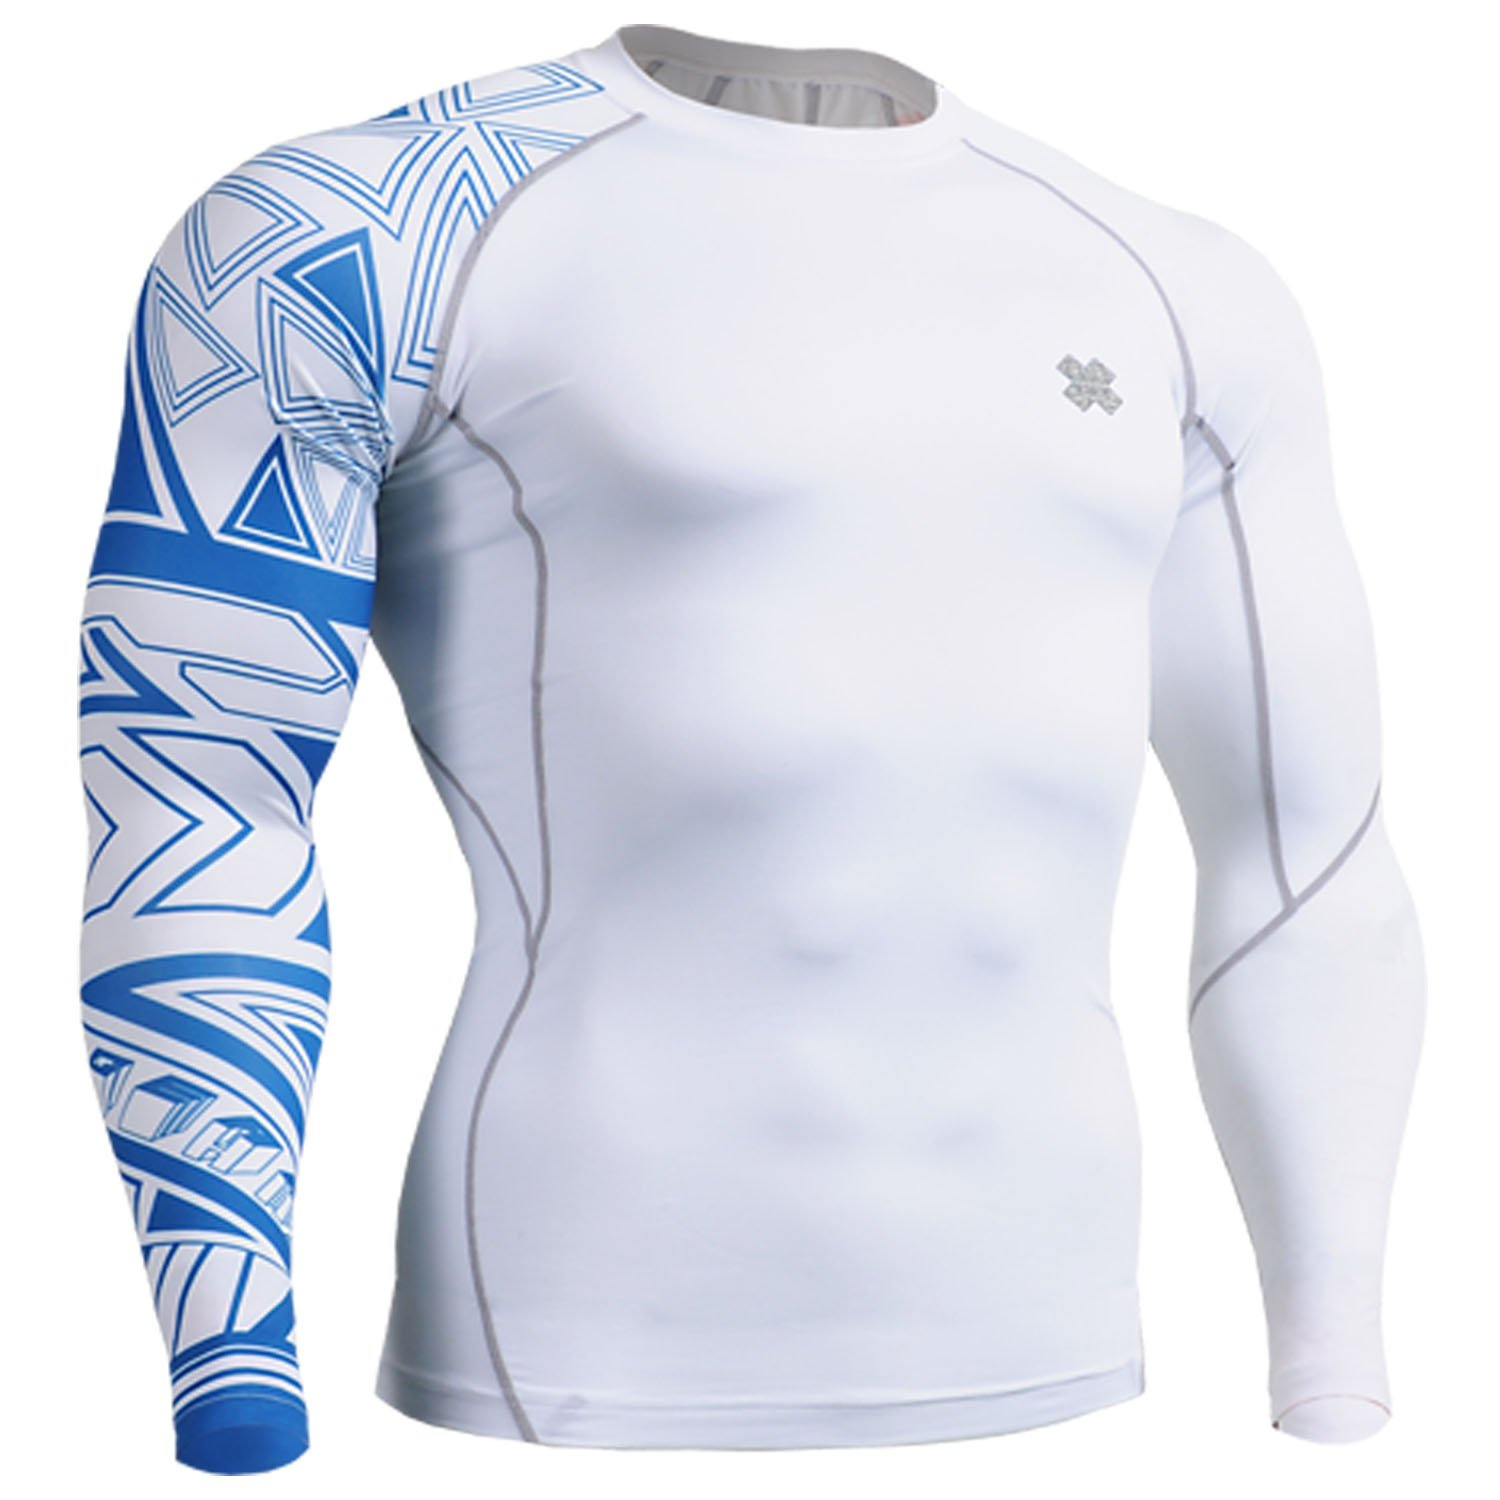 Fixgear white Running under compression body armour base layer shirt long sleeve